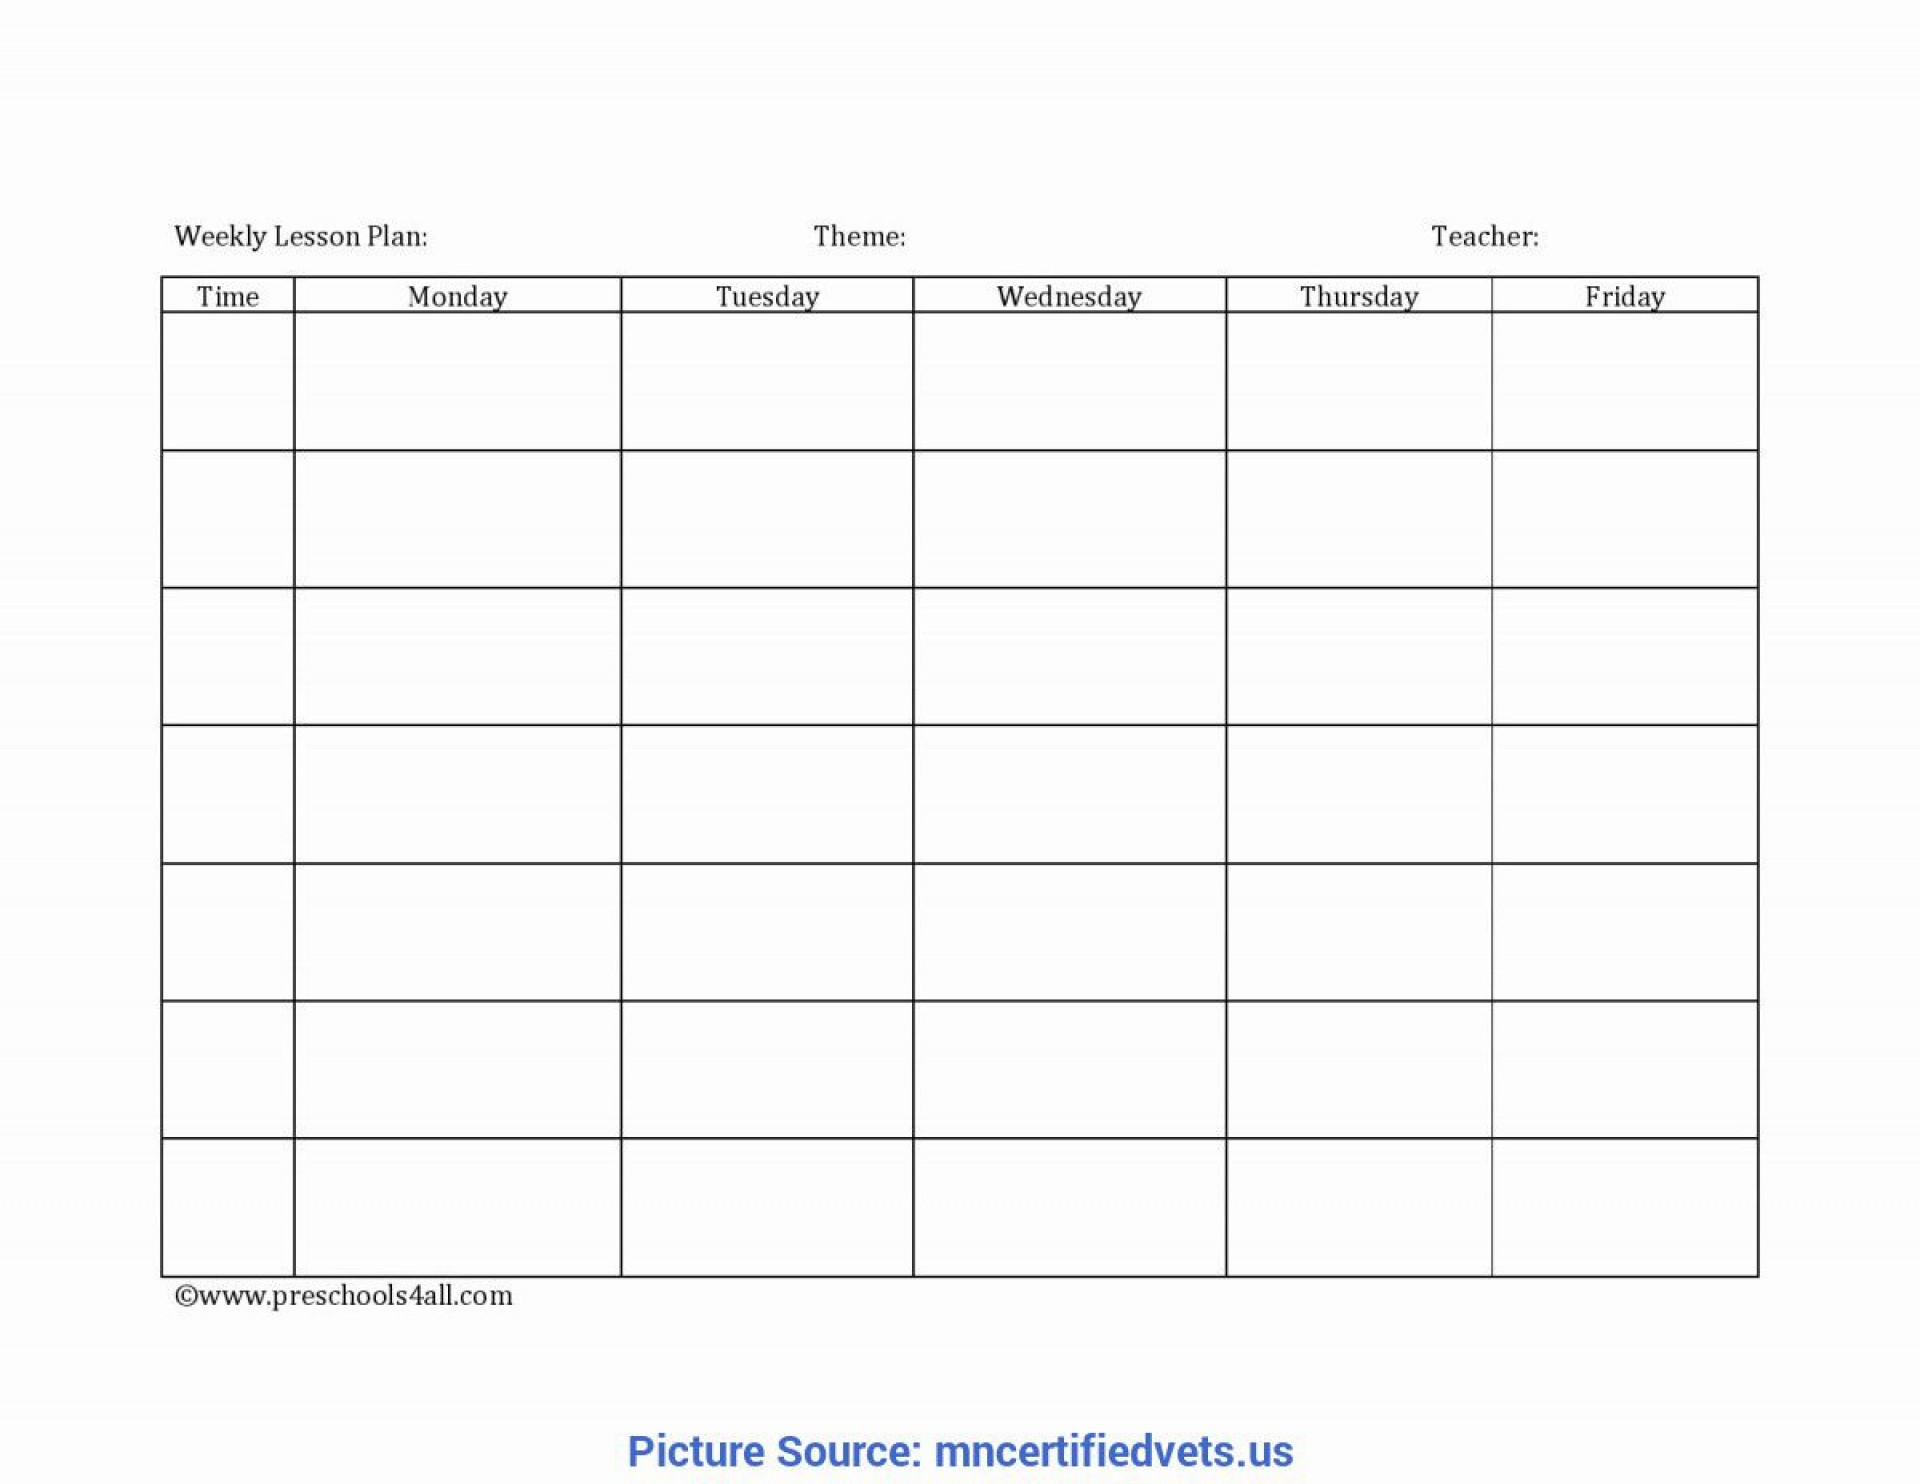 006 Unbelievable Weekly Lesson Plan Template Photo  Preschool Google Doc Editable1920